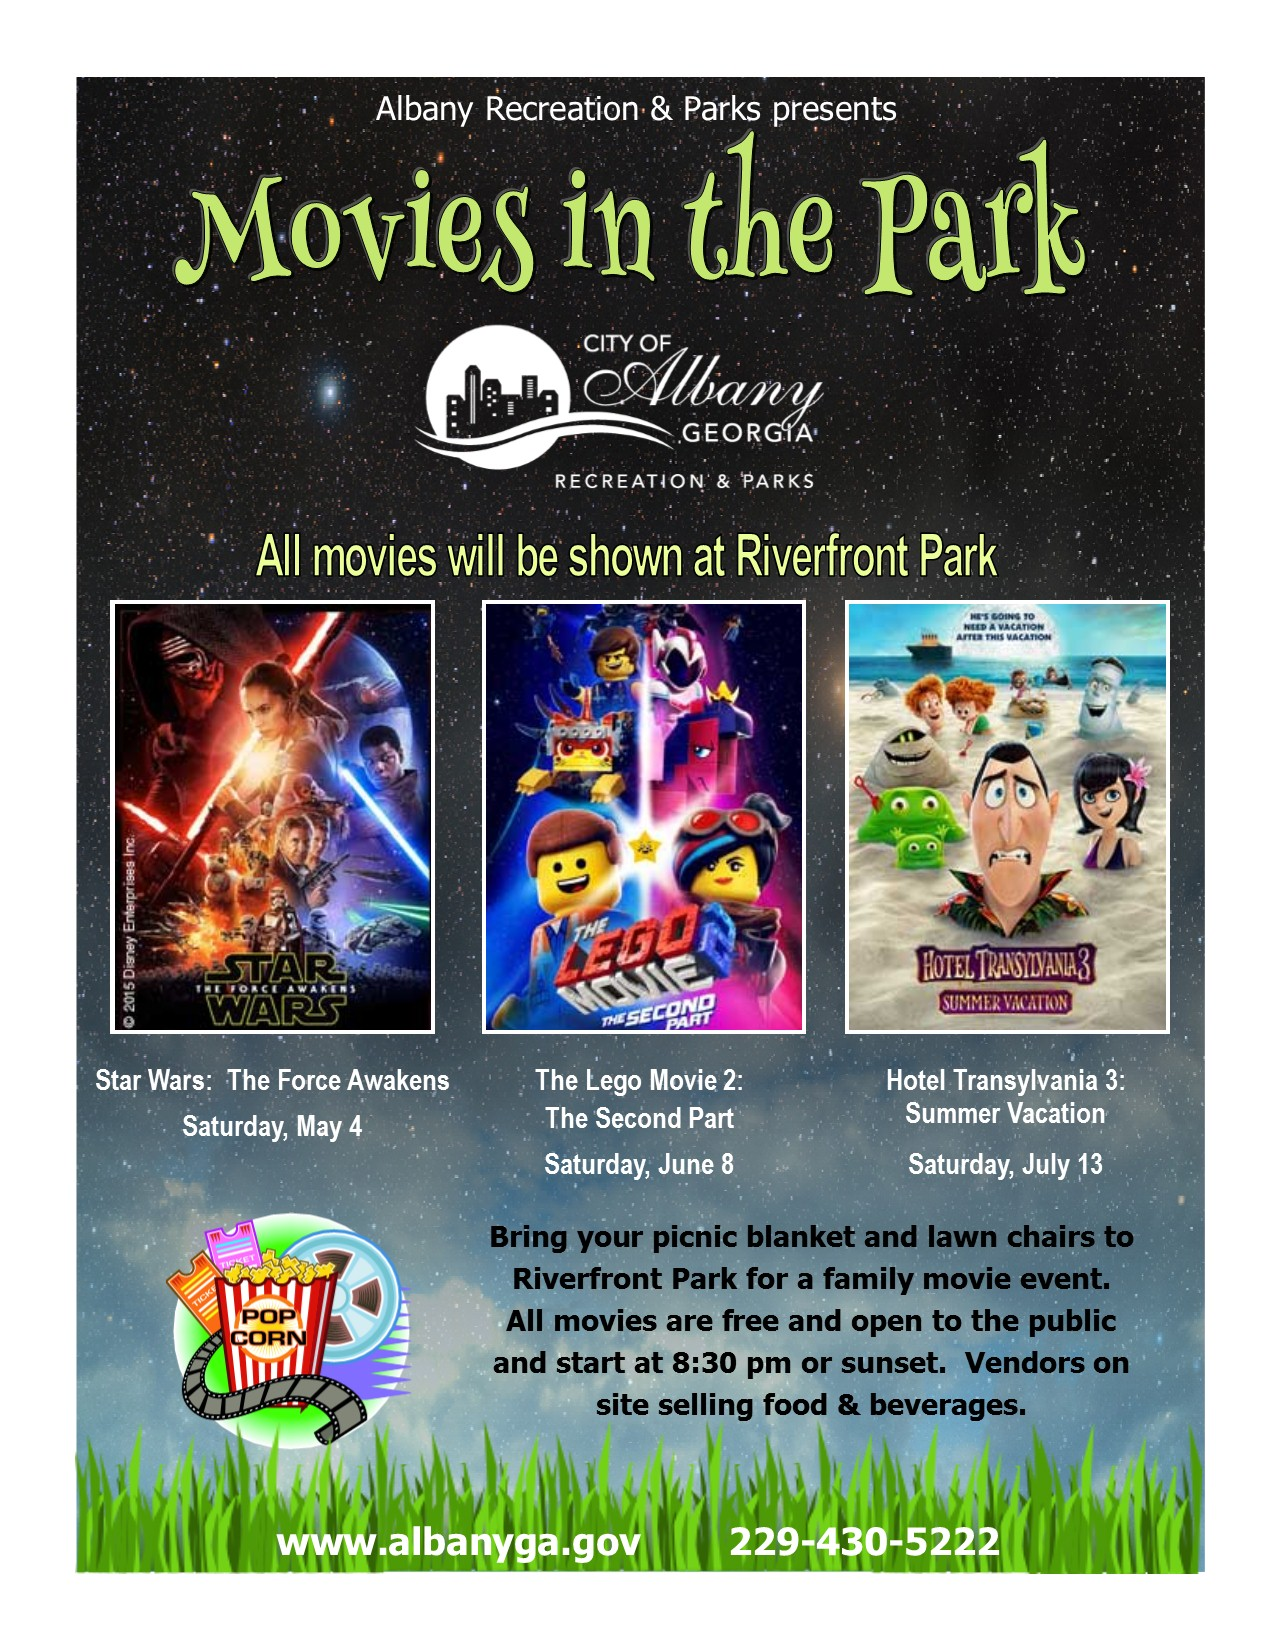 Movies in the Park: Hotel Transylvania 3: Summer Vacation